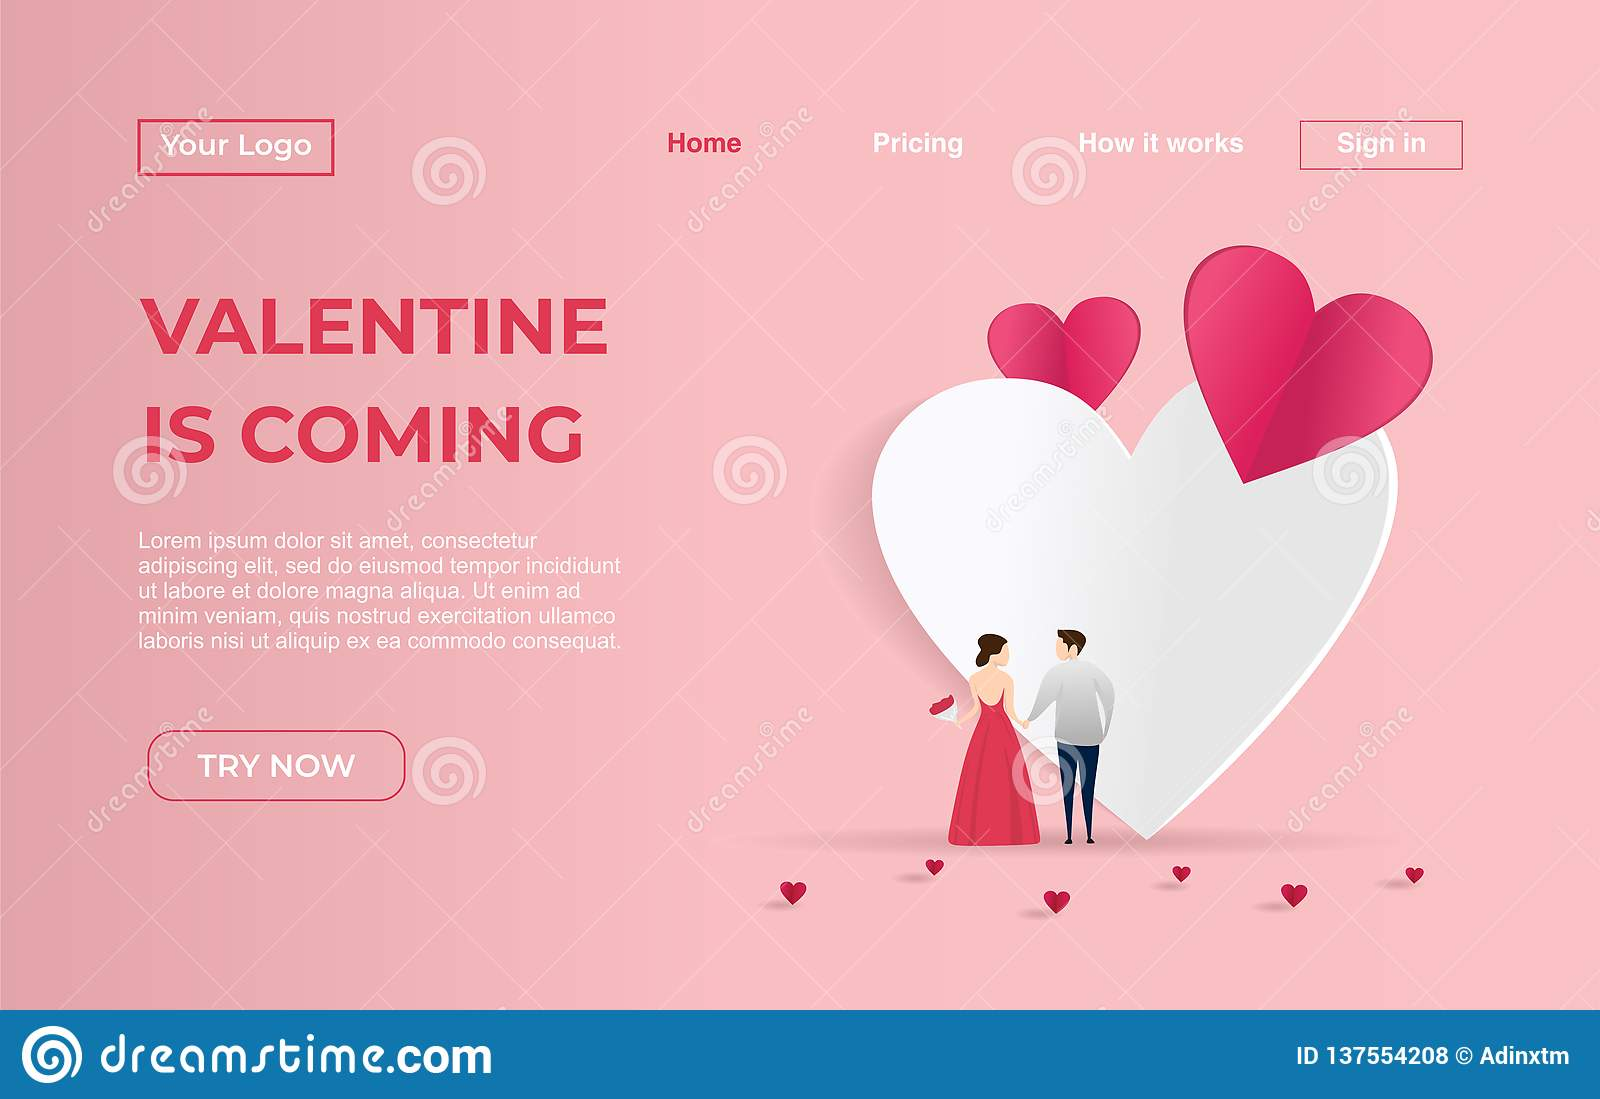 d626f84af3 Awesome Landing page template of Couple with Valentine Dating Apps  Illustration Concept. Modern flat design concept of web page design for  website and ...